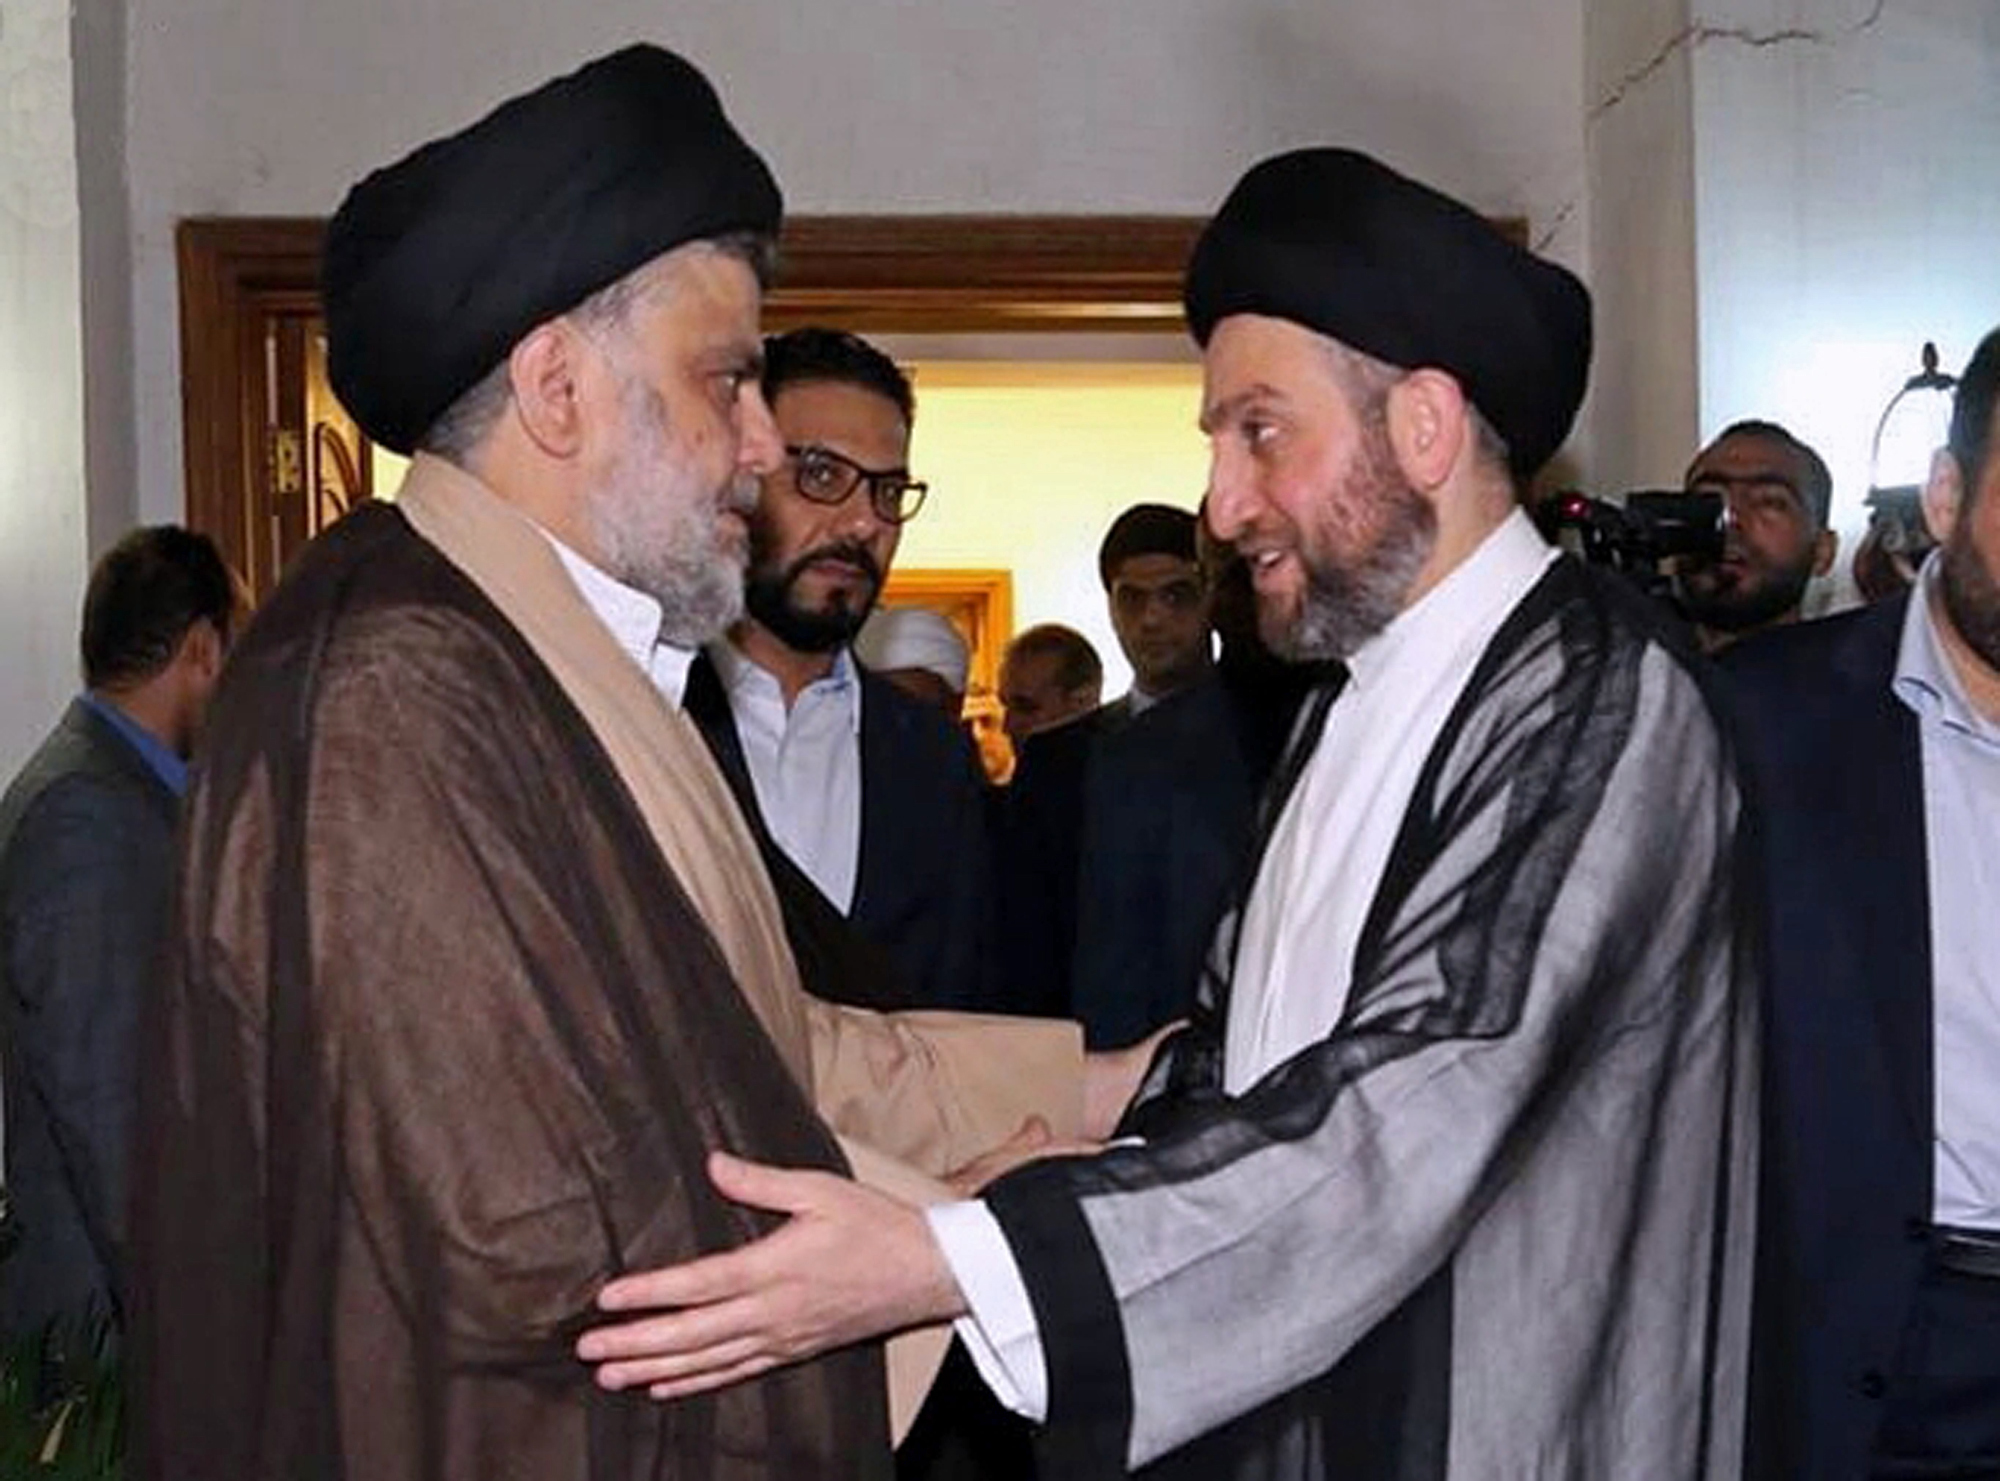 In this photo provided by the Sadr Media Office, Shiite cleric Muqtada al-Sadr, left, greets Shiite leader Ammar al-Hakim on his arrival for their meeting in Baghdad, Iraq, May 22, 2018.